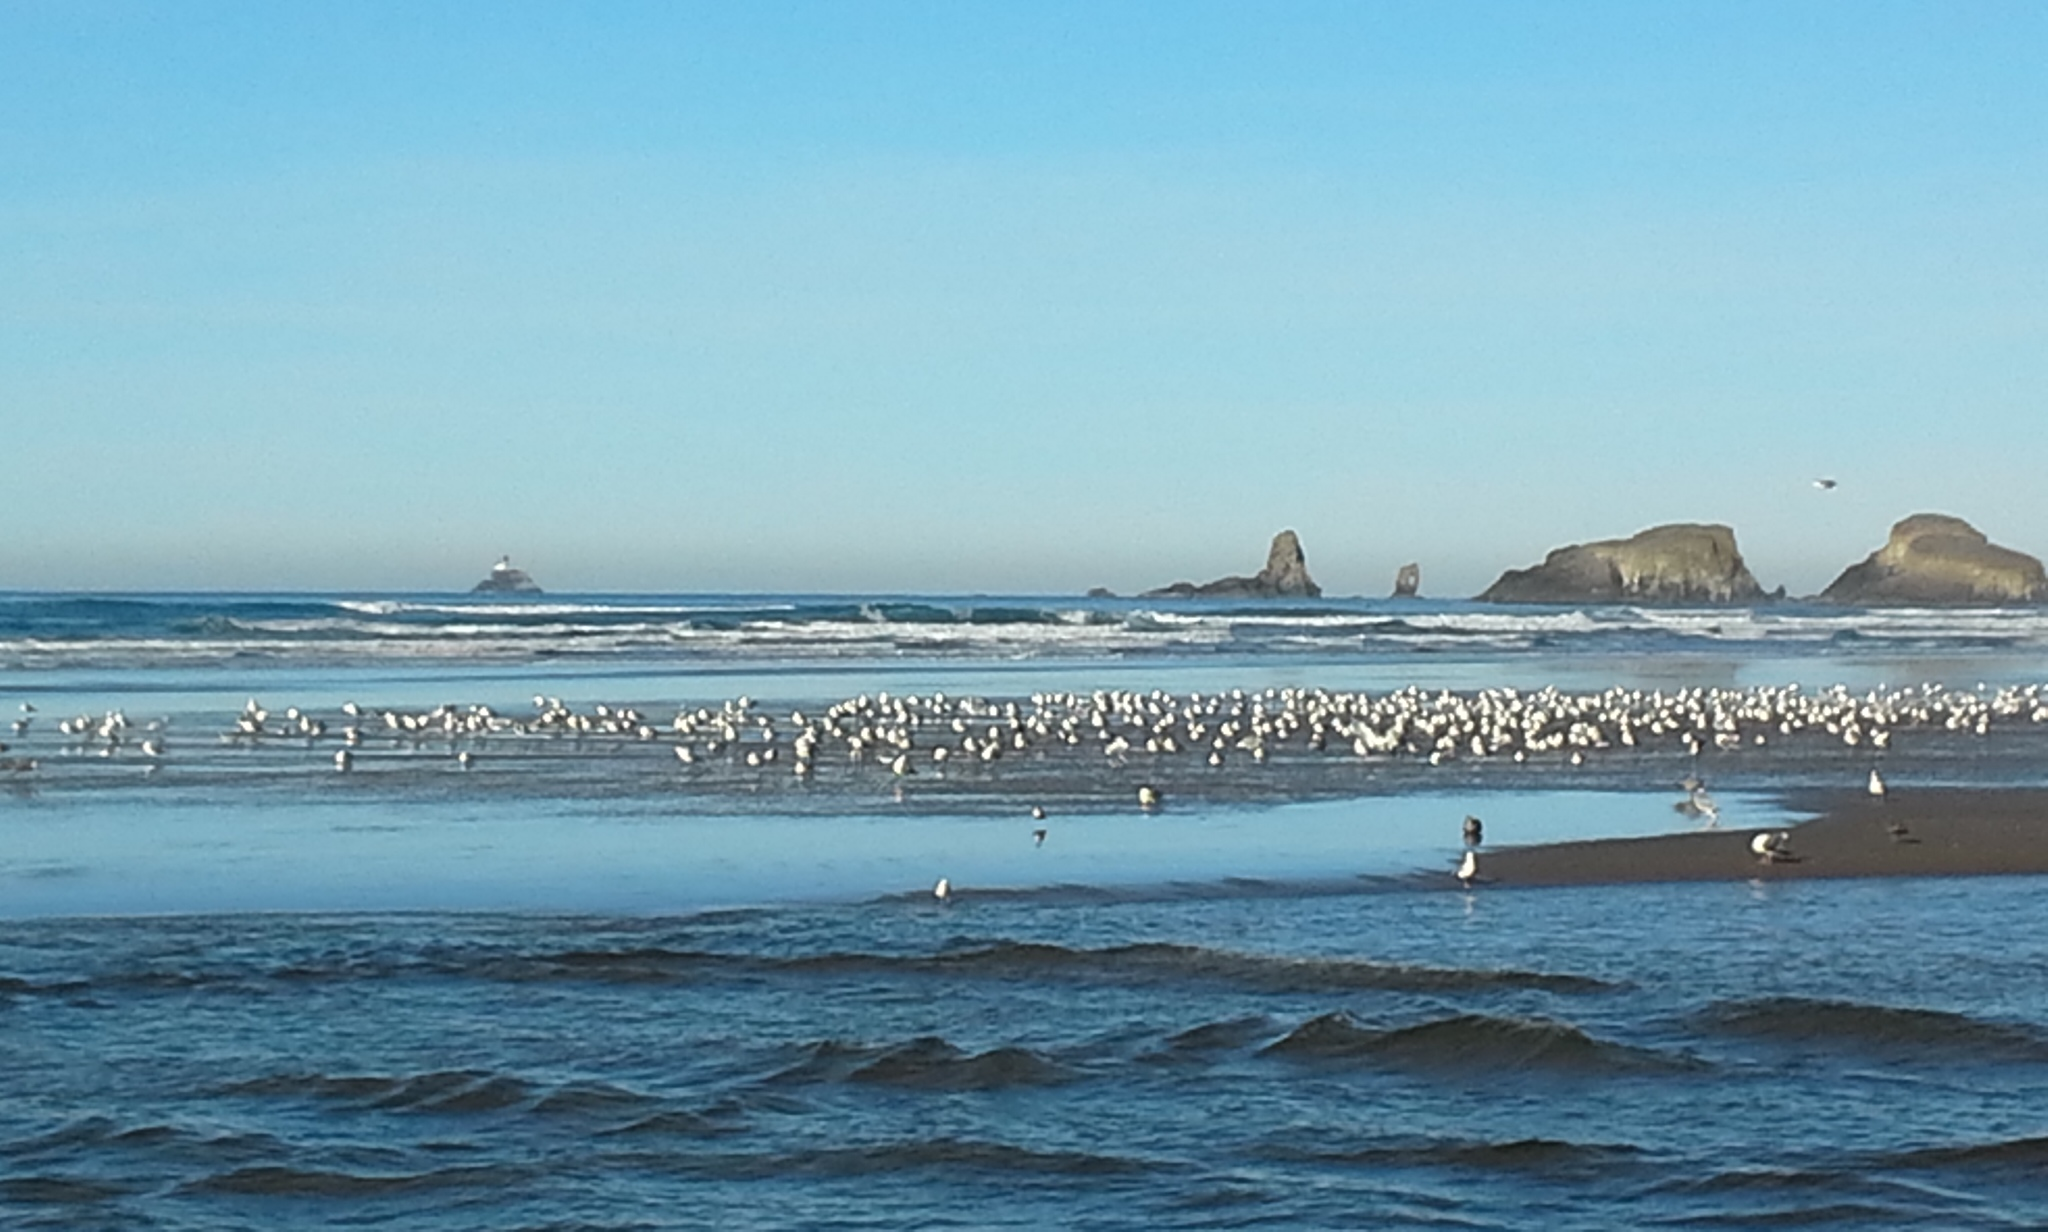 Gulls of a feather flock together